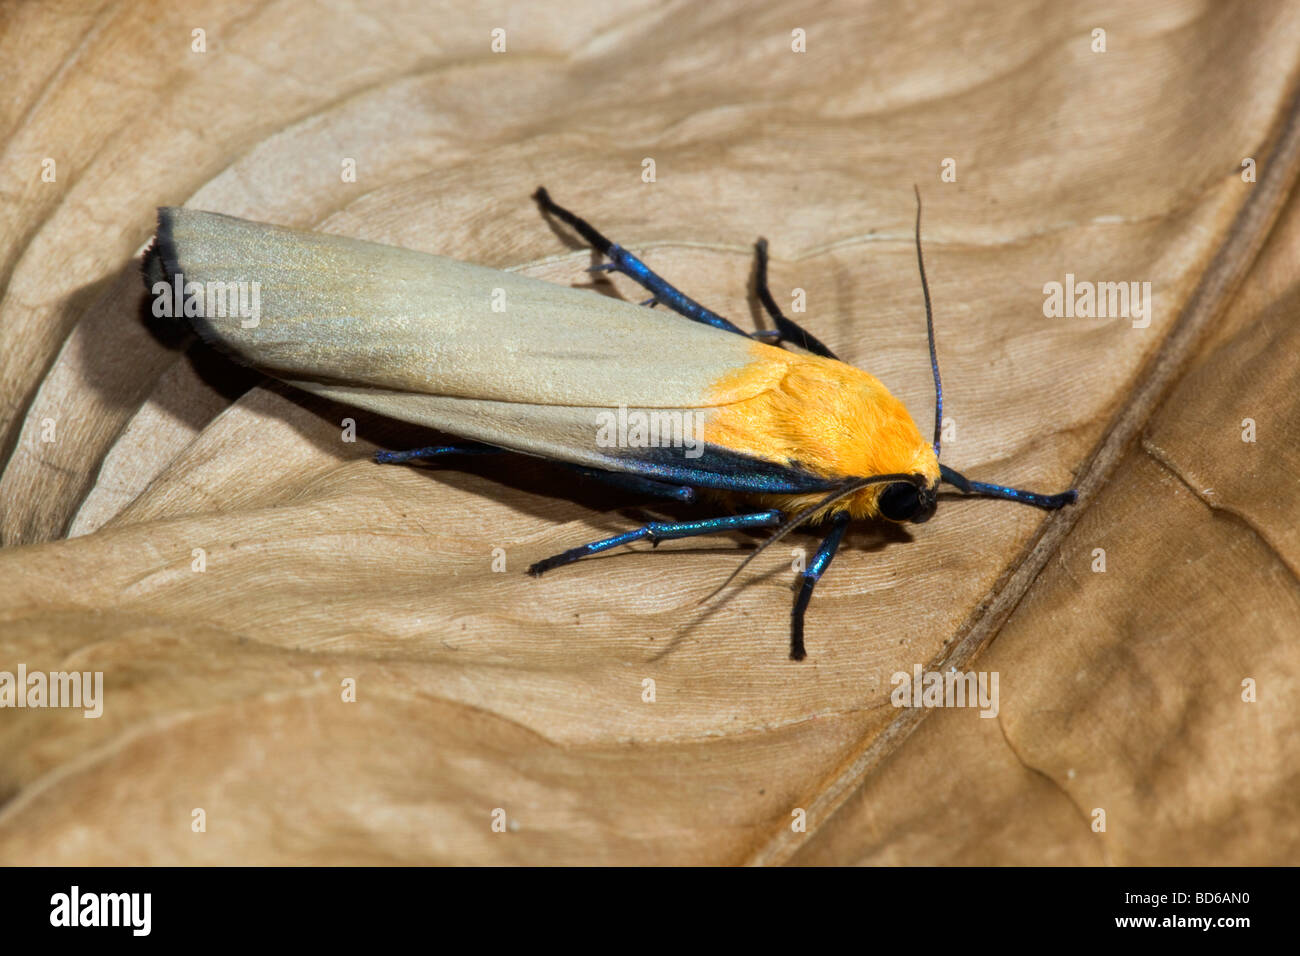 four spotted footman moth Lithosia quadra male - Stock Image